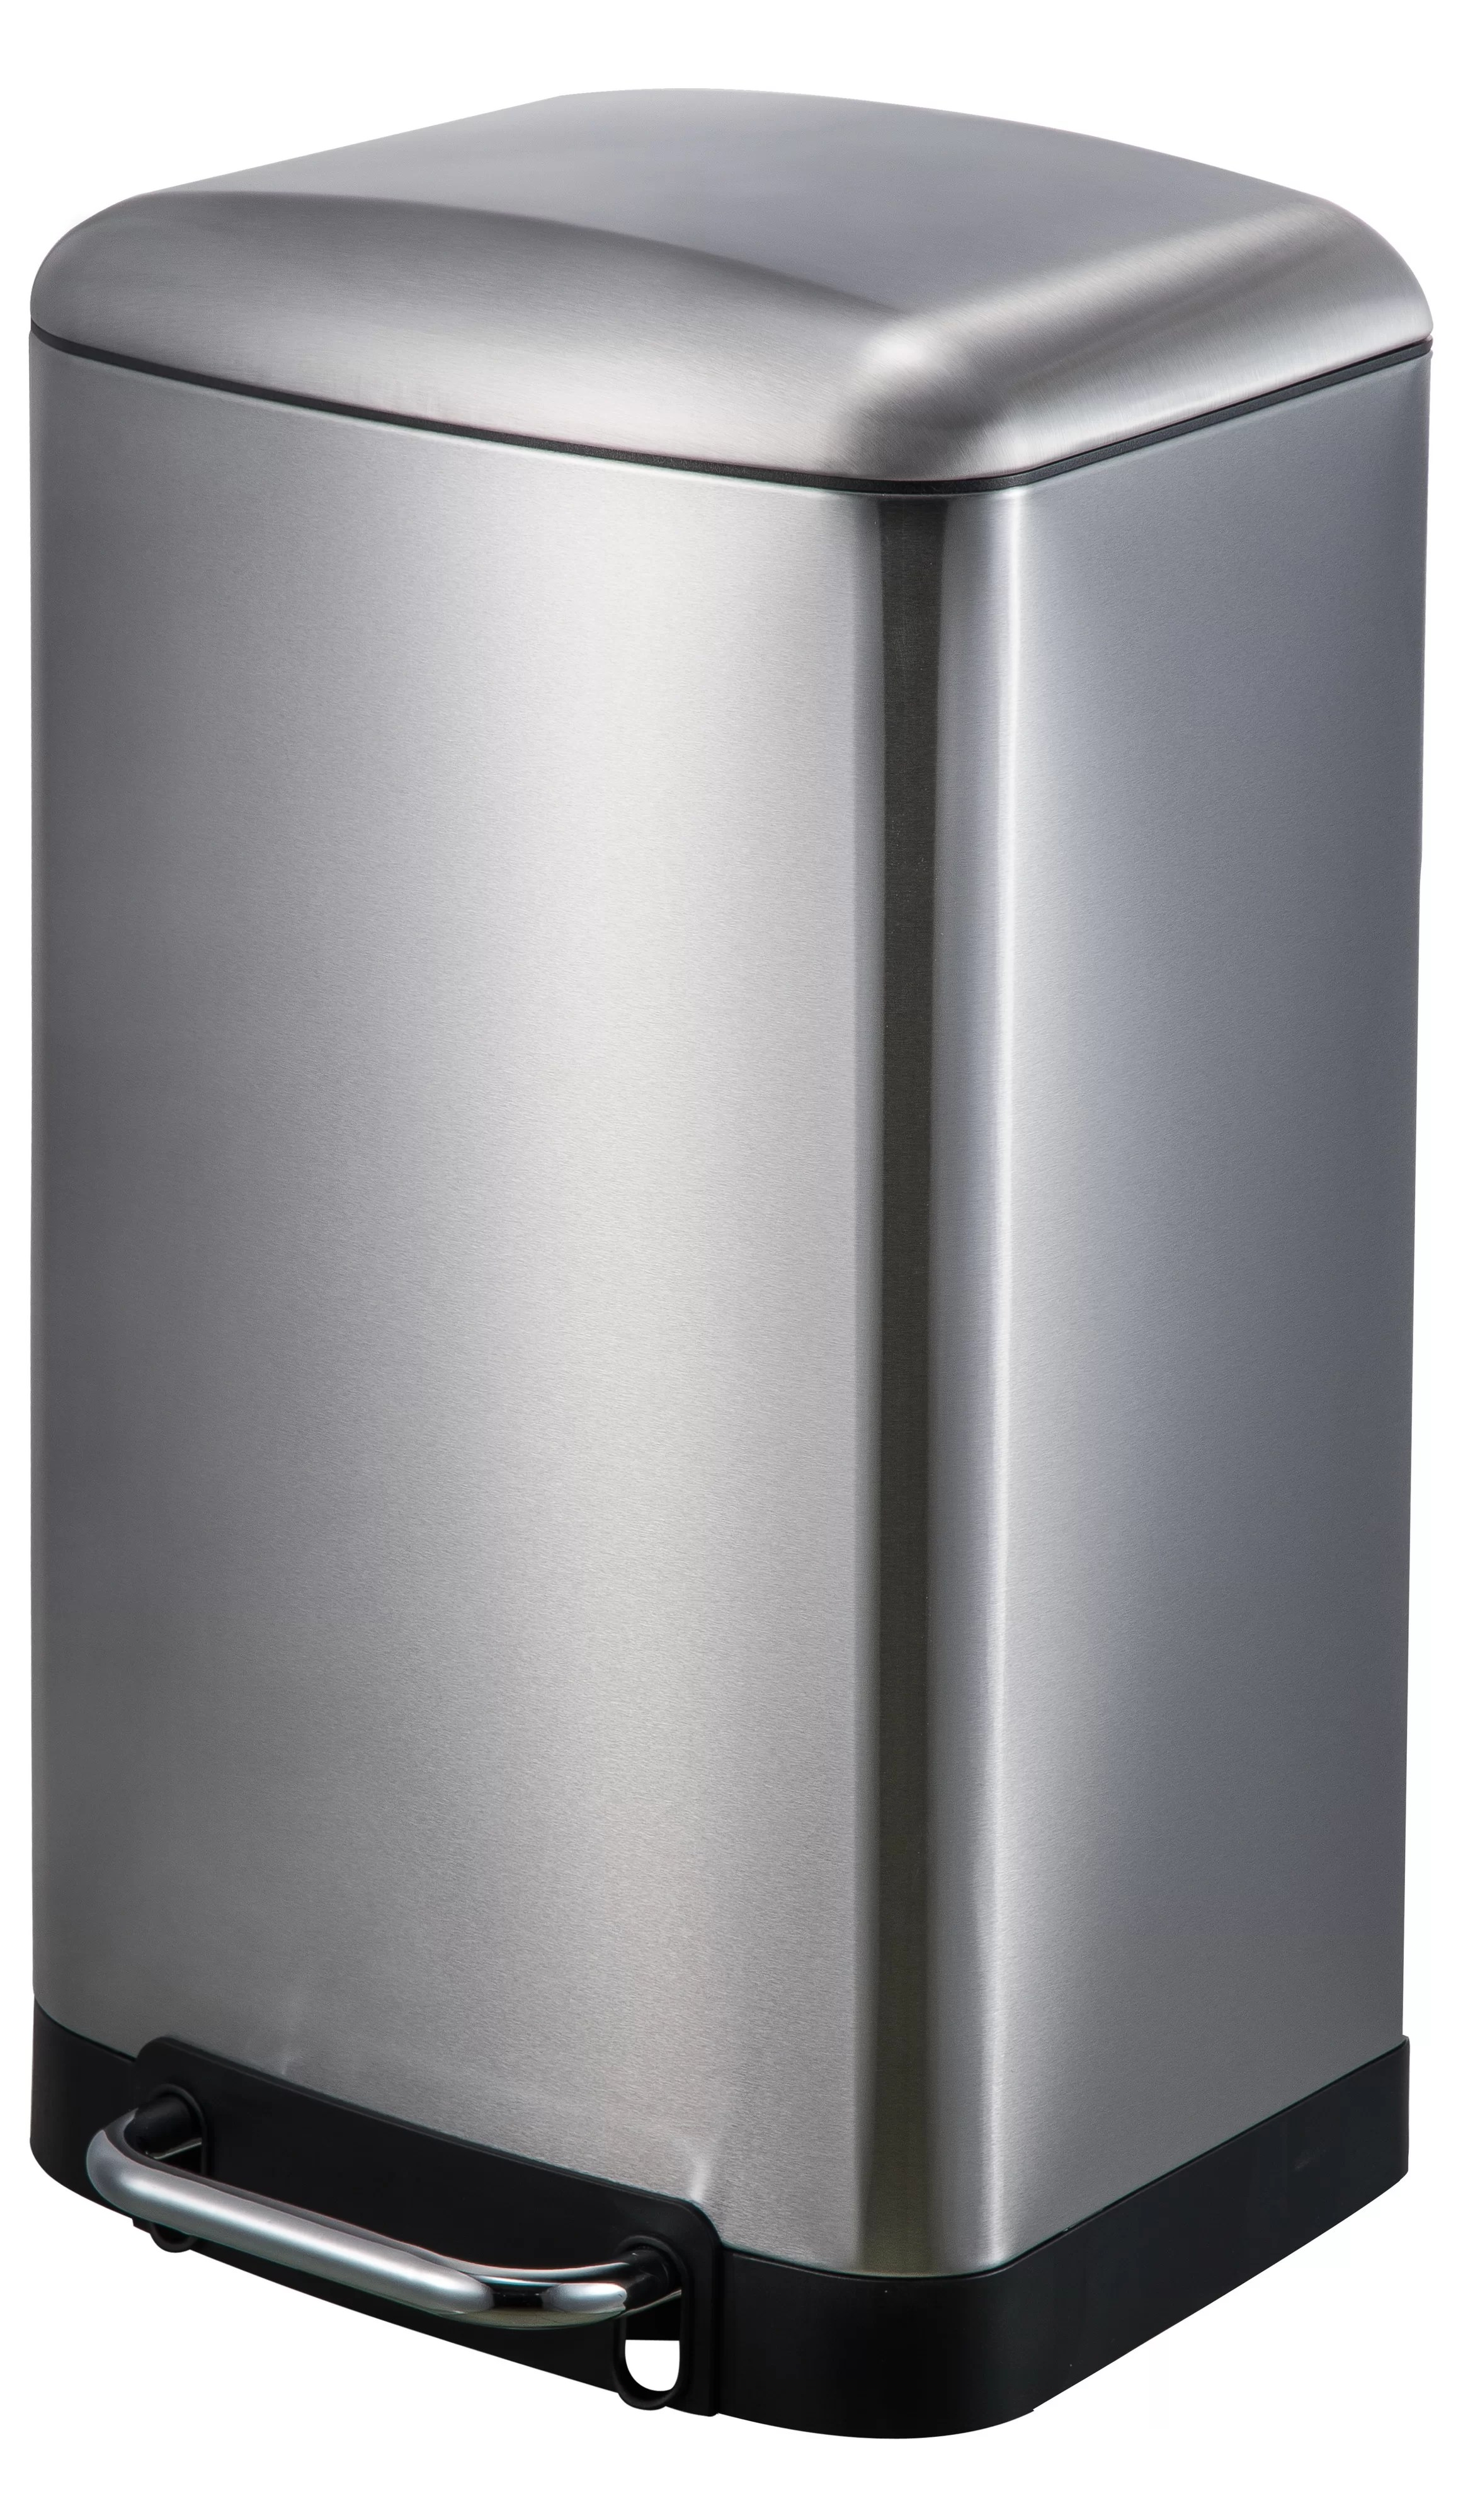 Elegant Trash Can Stainless Steel 8 Gallon Step On Trash Can